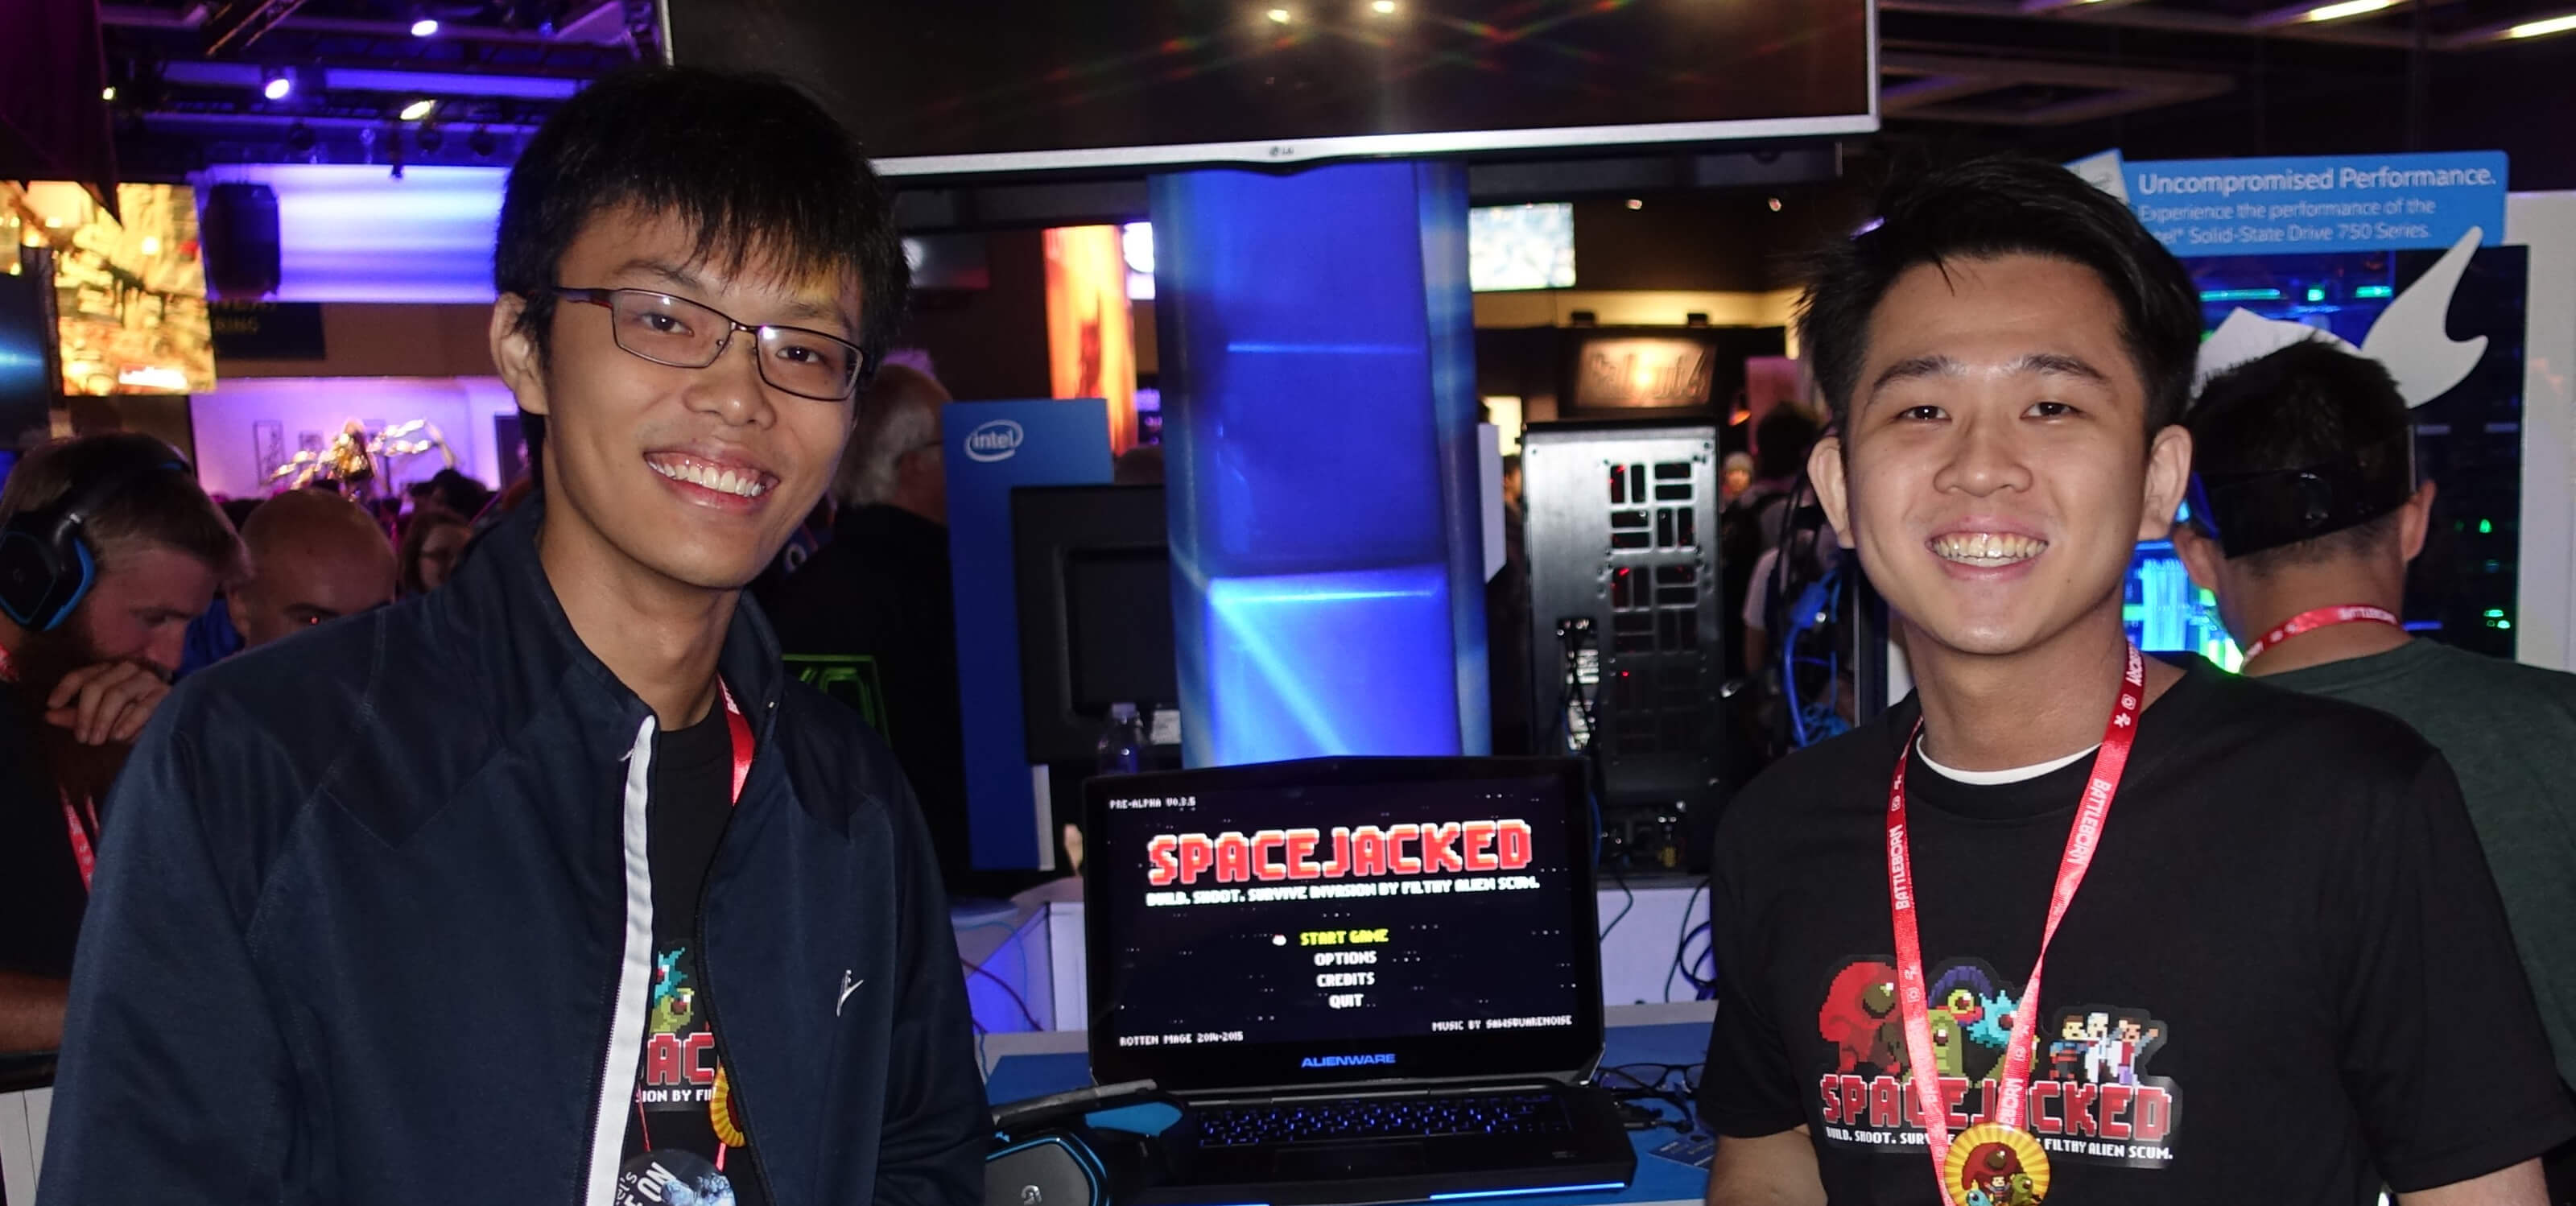 DigiPen (Singapore) graduates Chin Yong Kian and Lim Chian Song stand next to a demo of their game, Spacejacked.